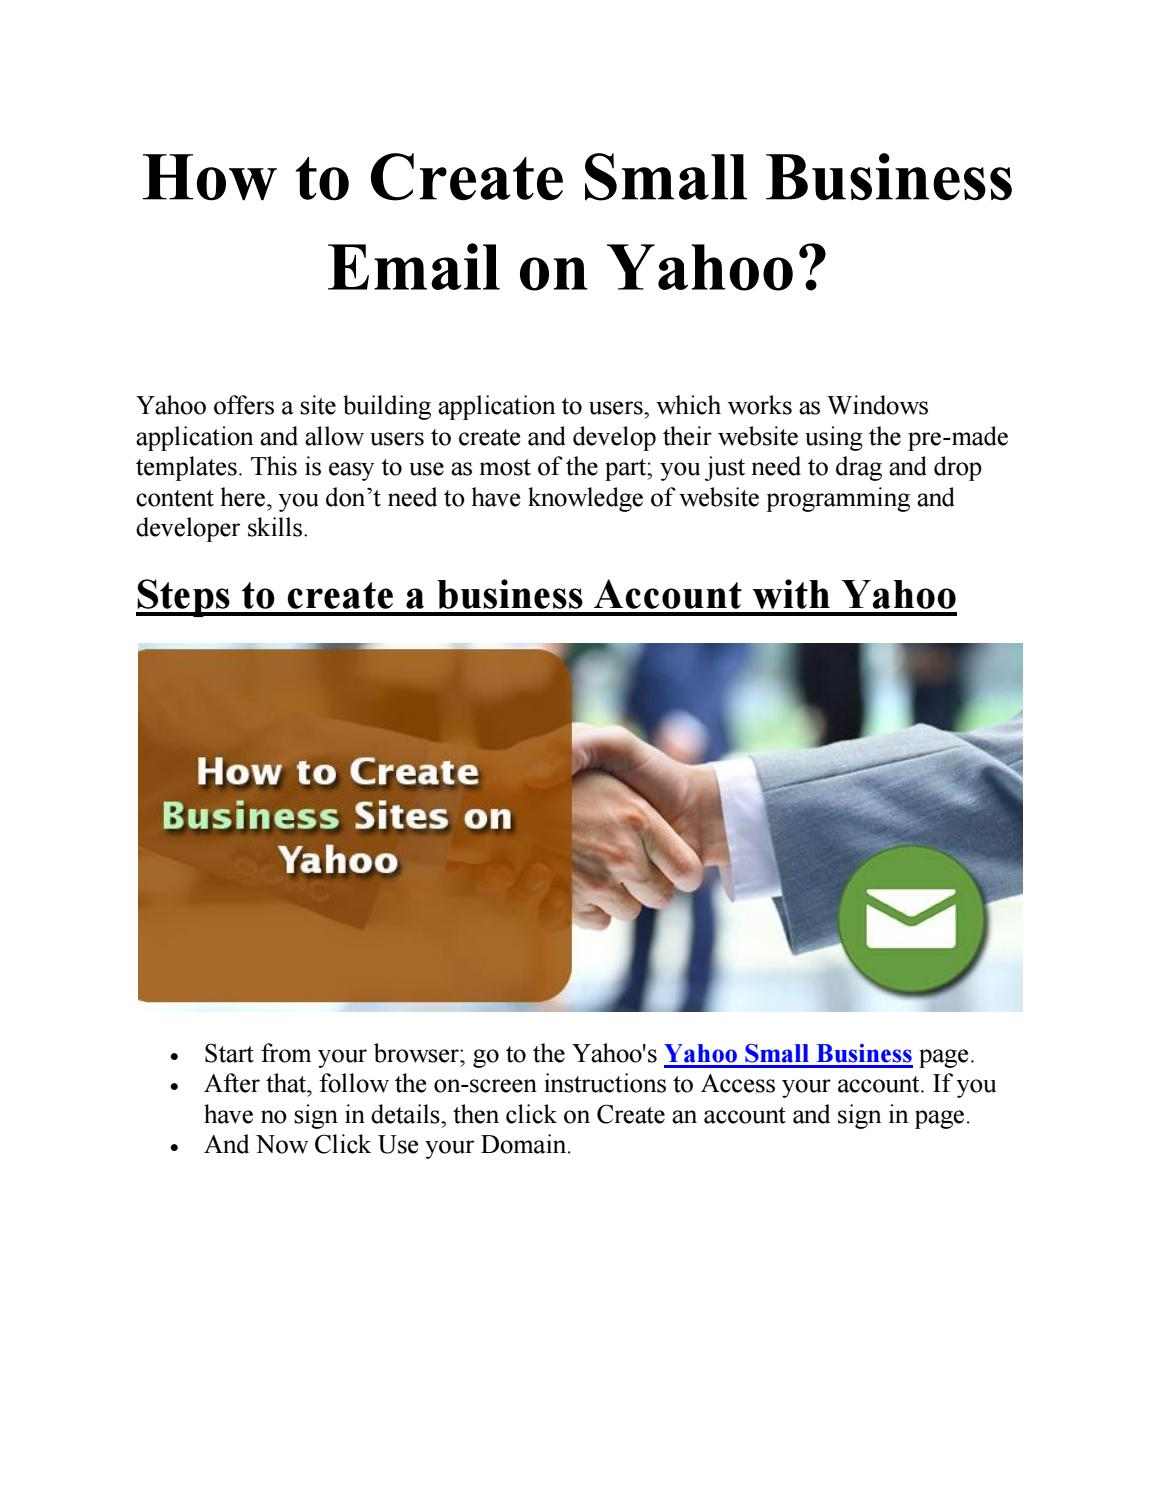 Create small business email on yahoo by nancywillson issuu cheaphphosting Image collections